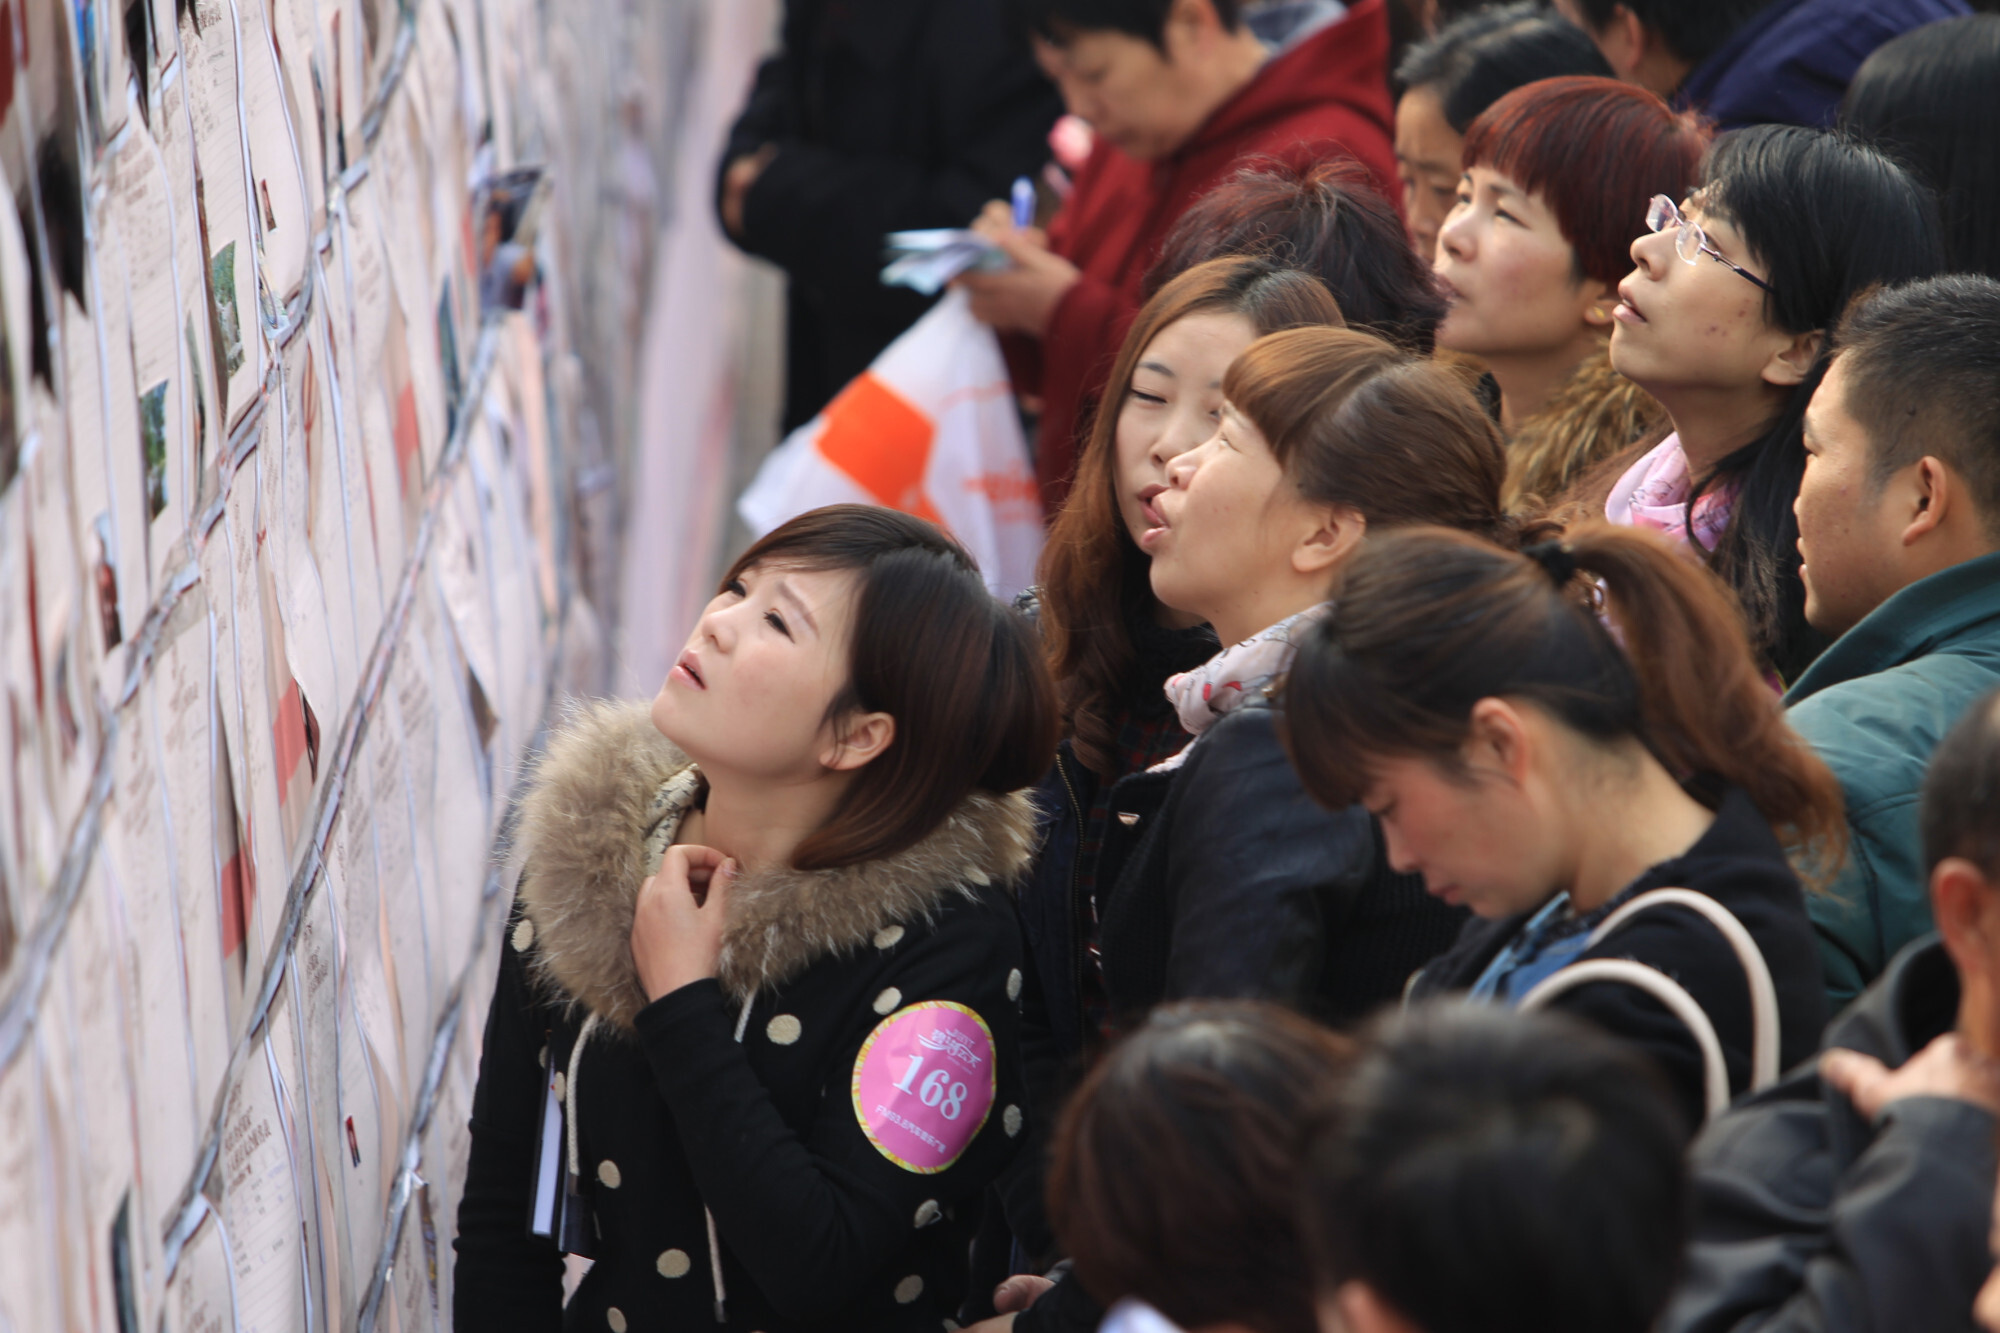 Single participants look at personal information of other bachelors at a mass matchmaking event ahead of Singles Day in Henan province in 2013. Photo: Imaginechina